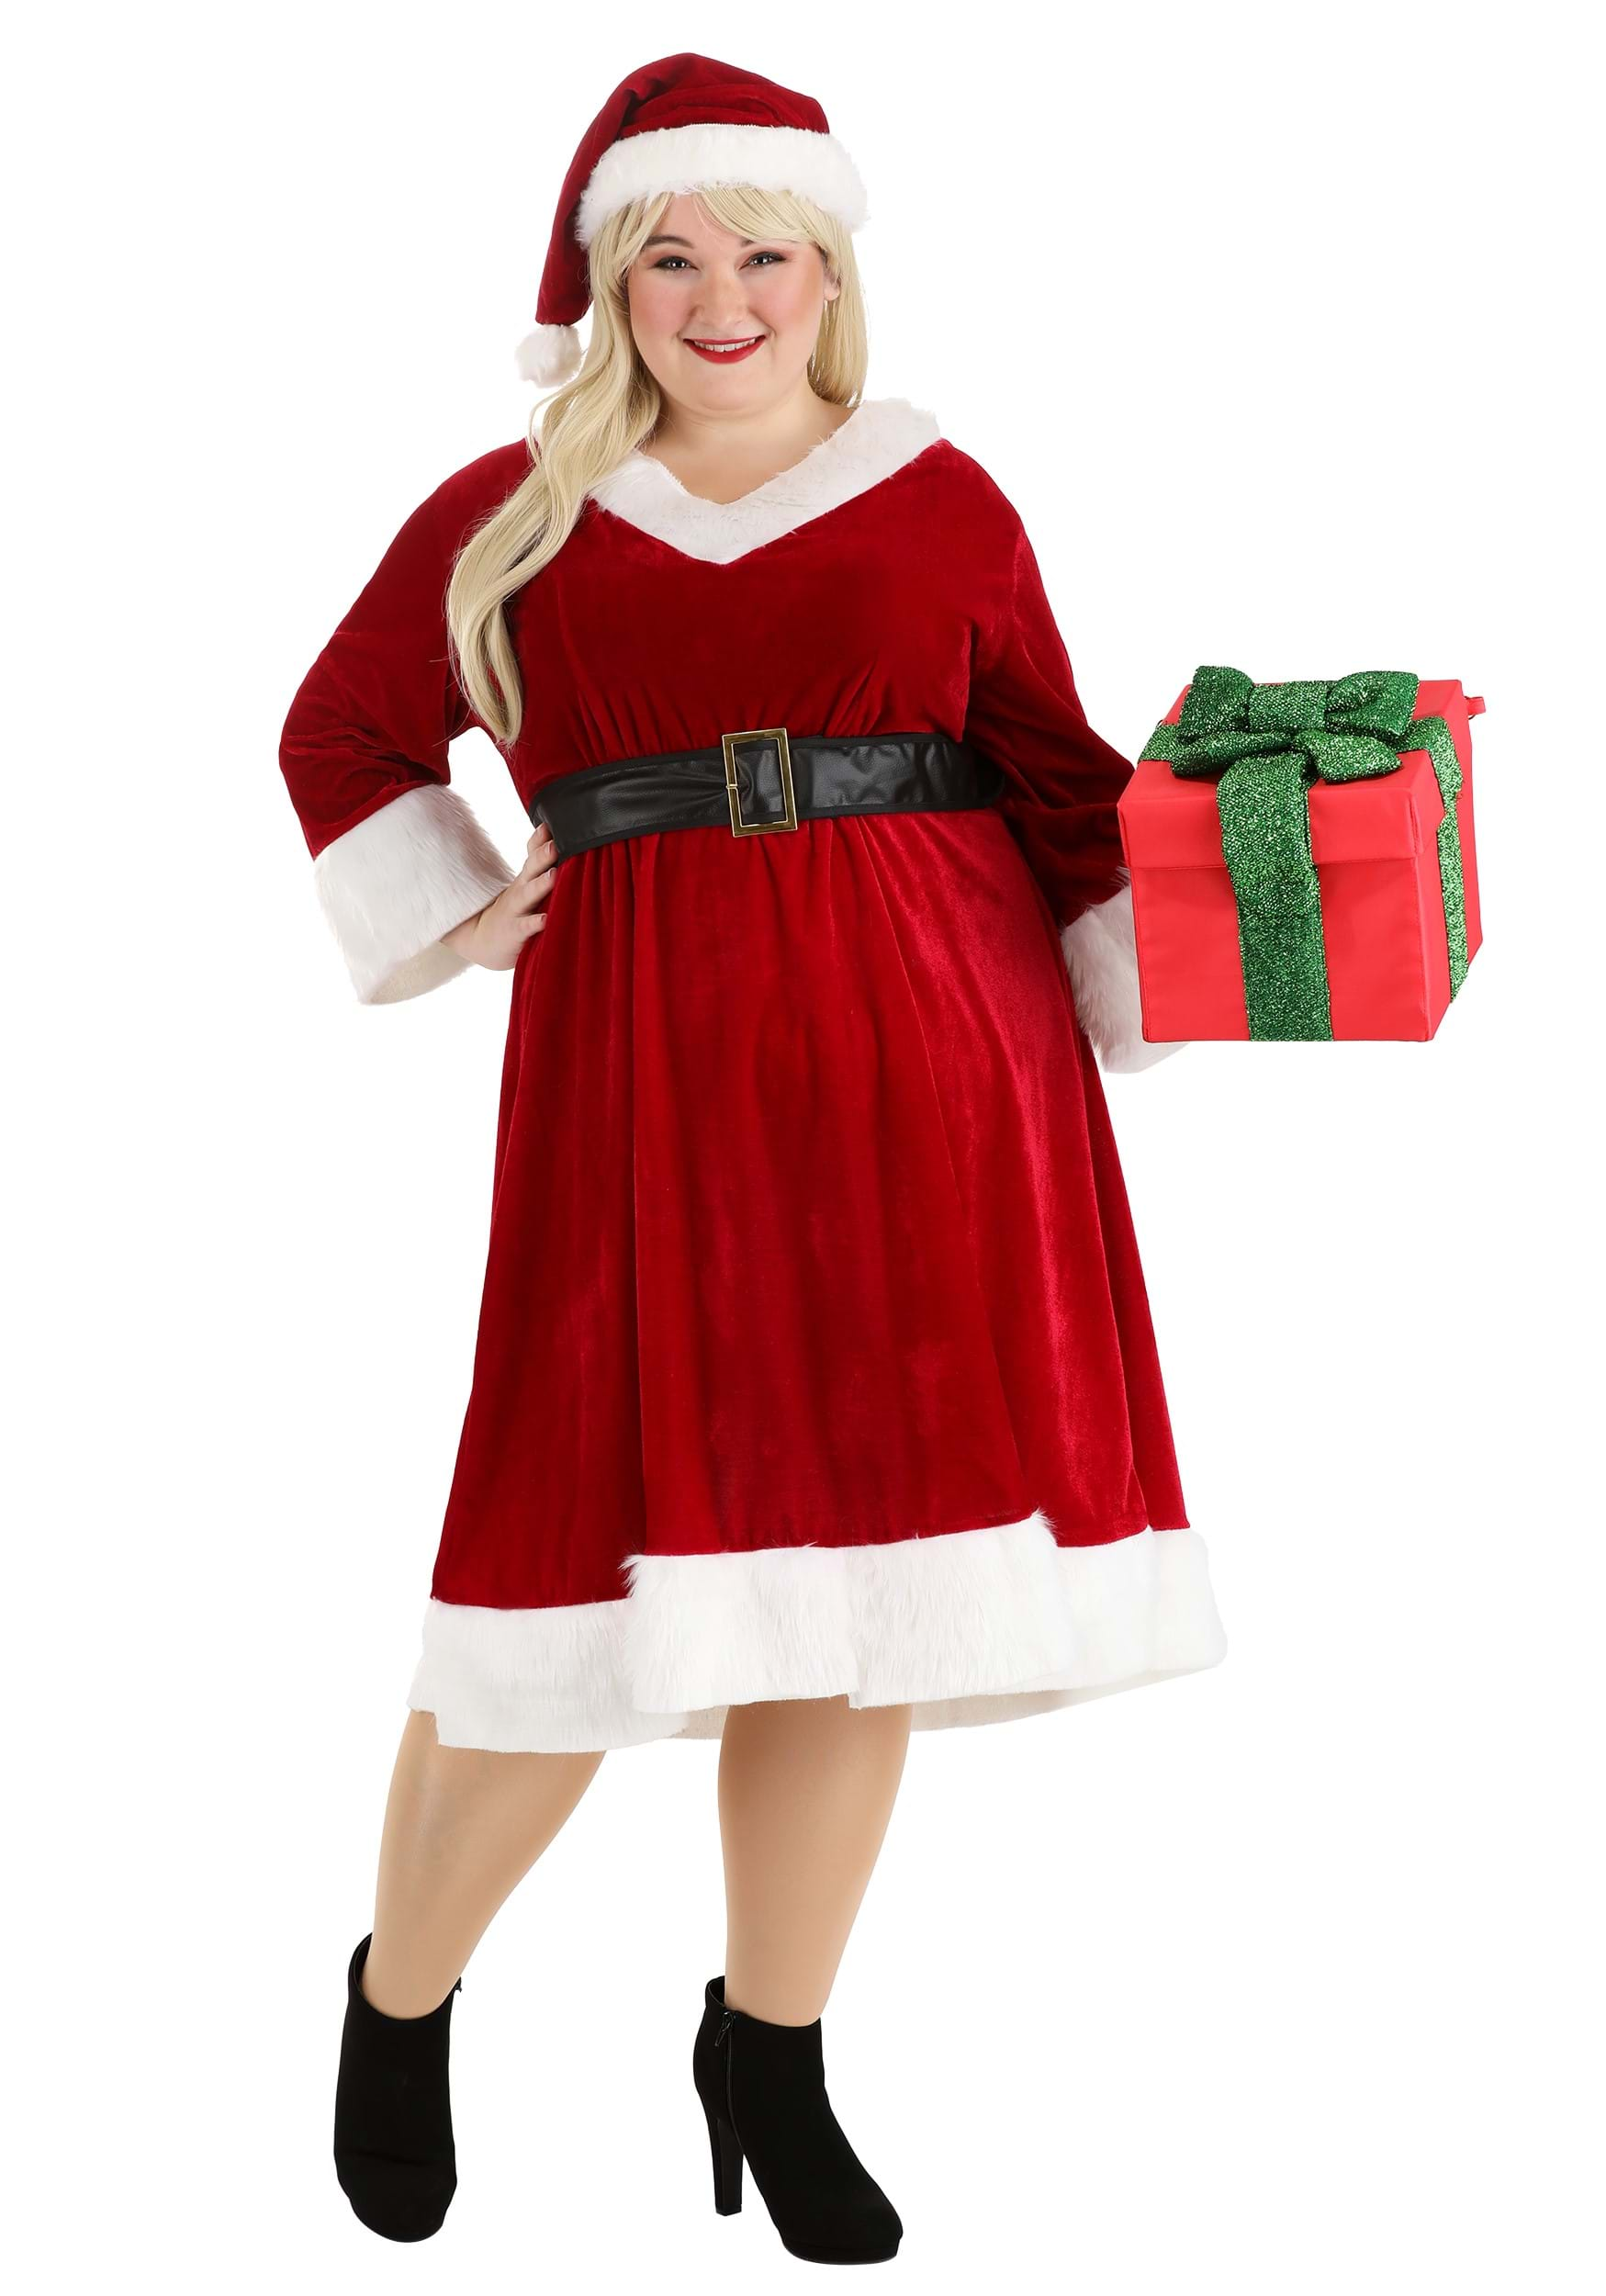 Plus size halloween costumes halloweencostumes plus size santa claus sweetie costume solutioingenieria Images